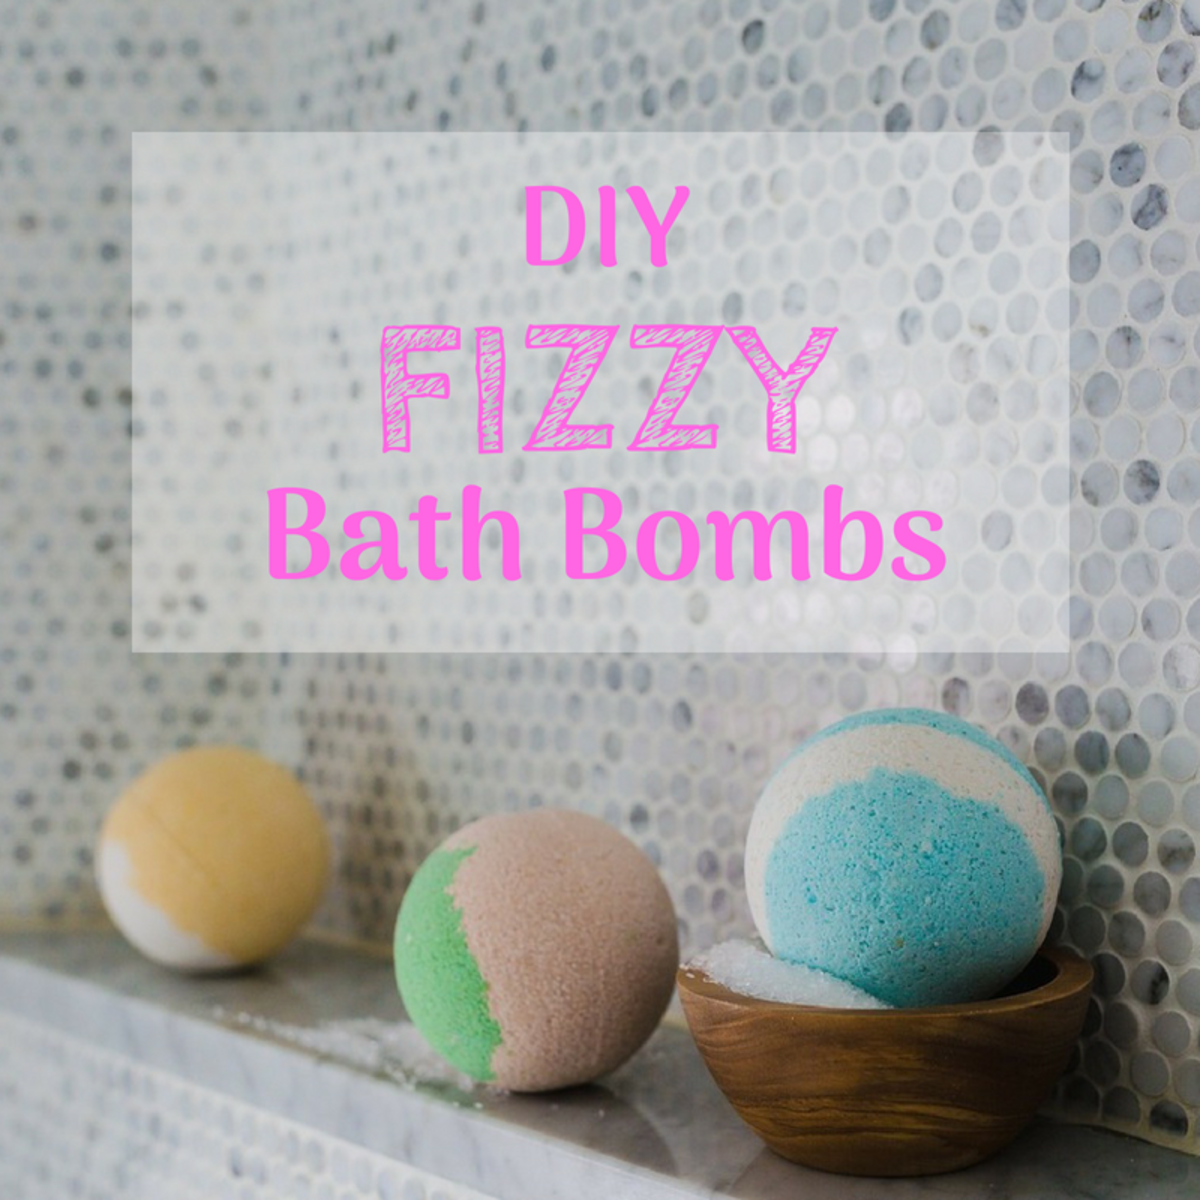 Bath bombs are easy to make at home.